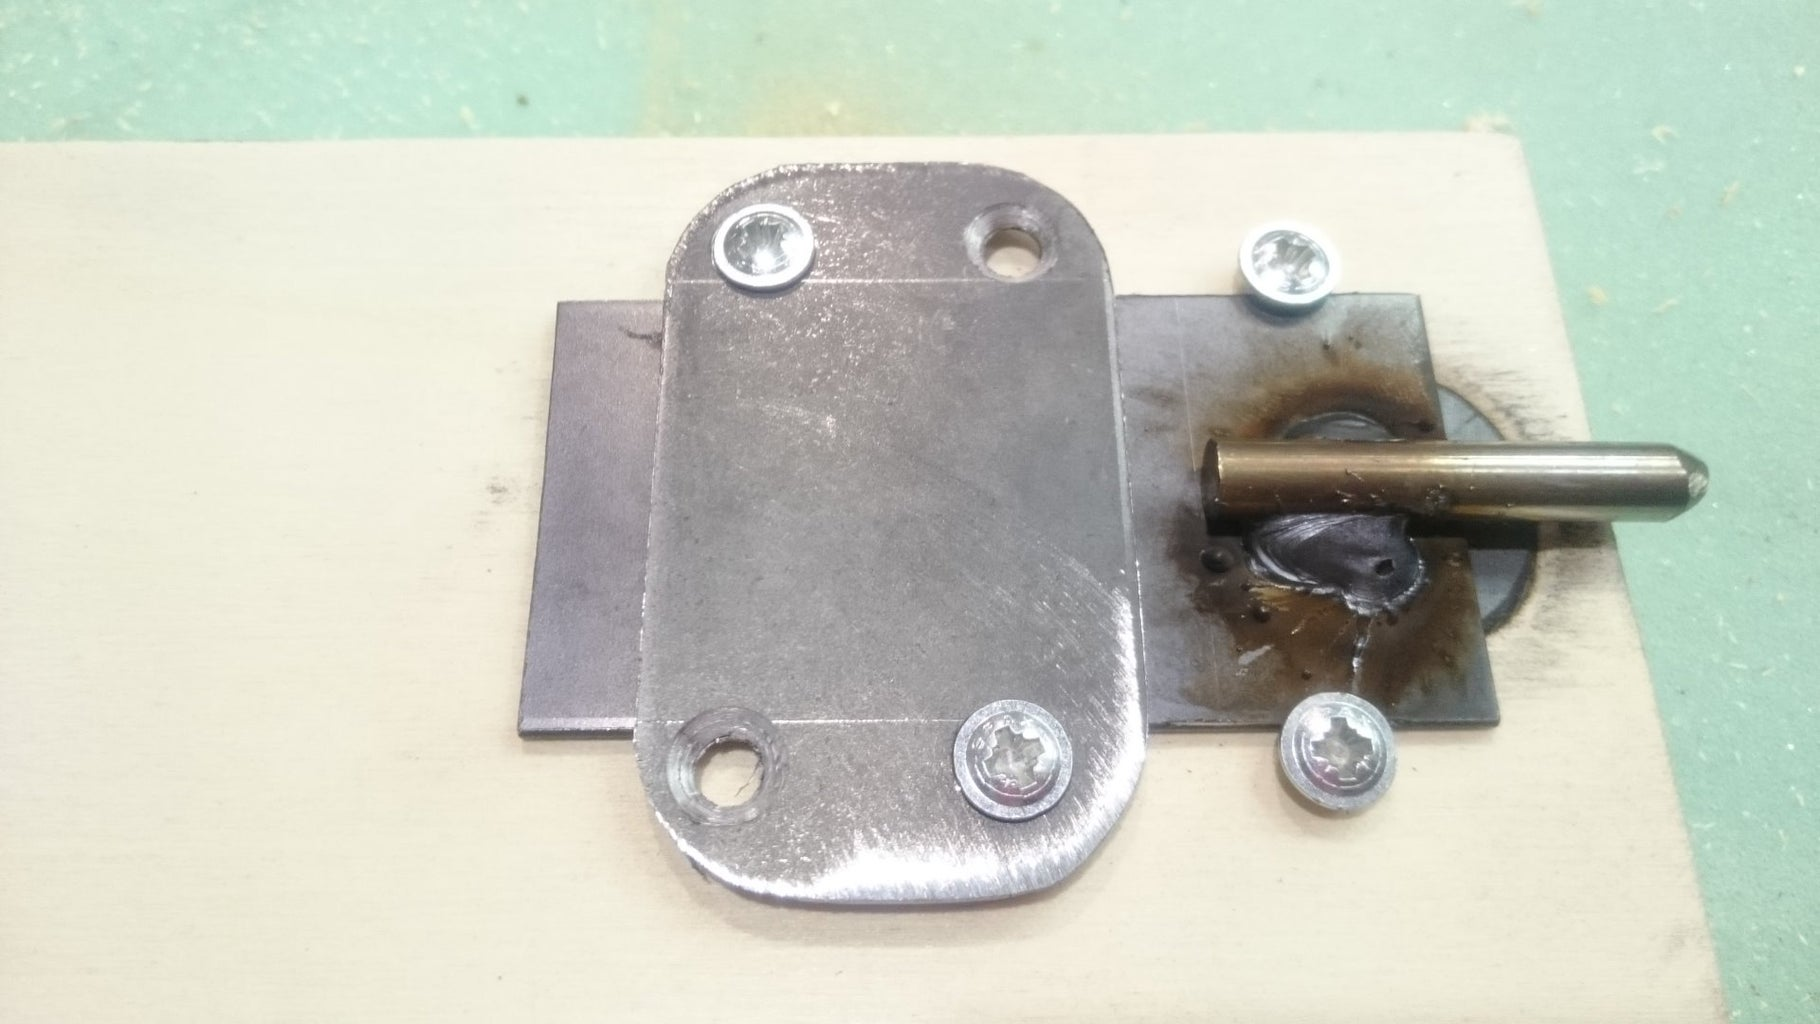 Mounting and Locking the Doors